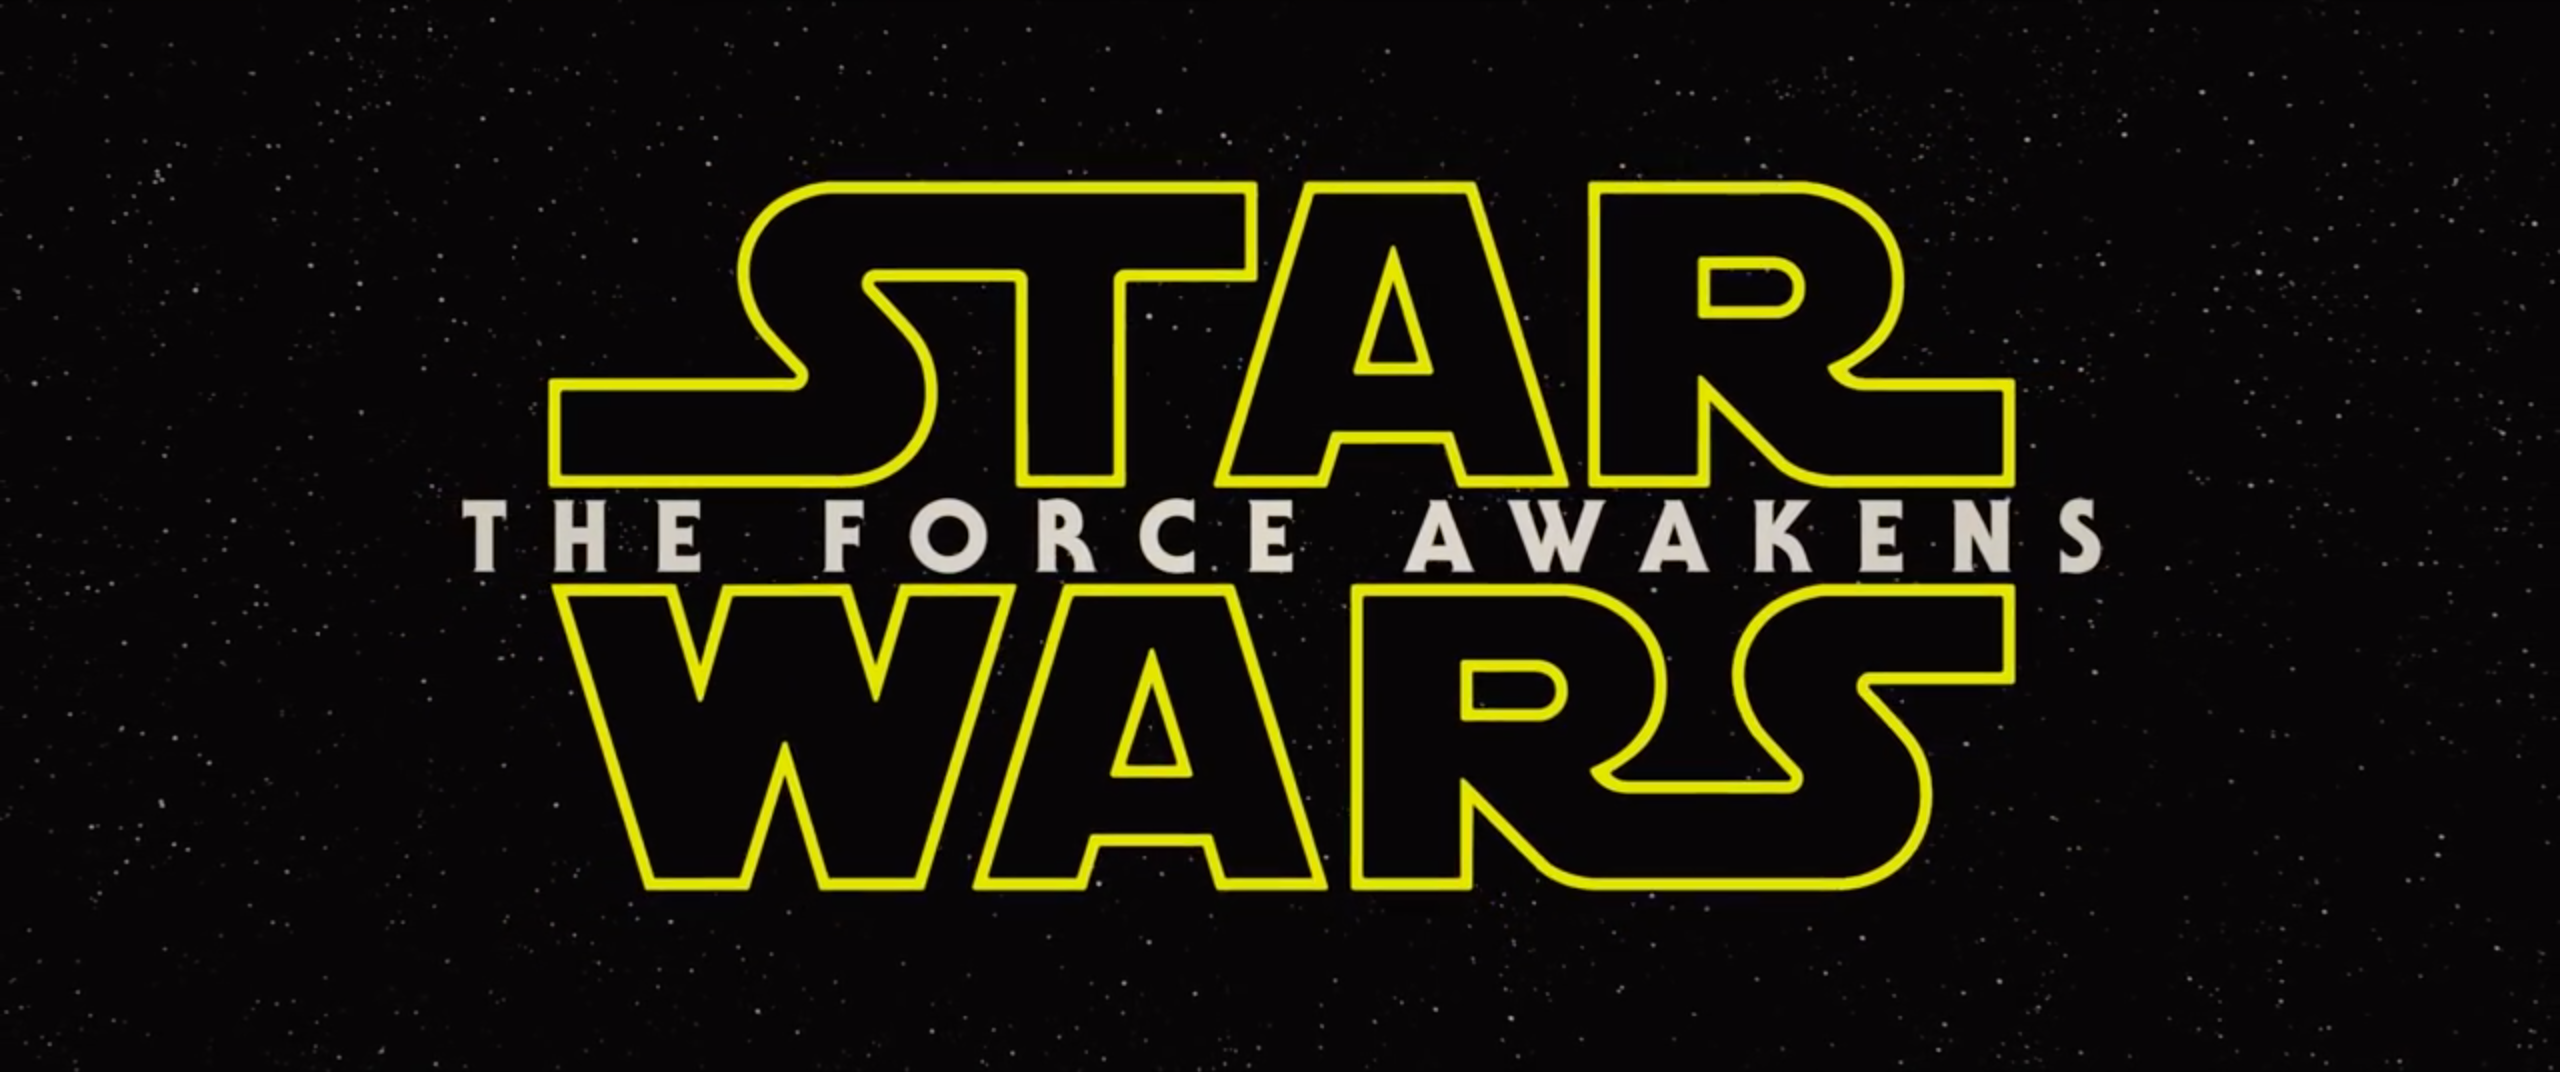 'Star Wars The Force Awakens' logo